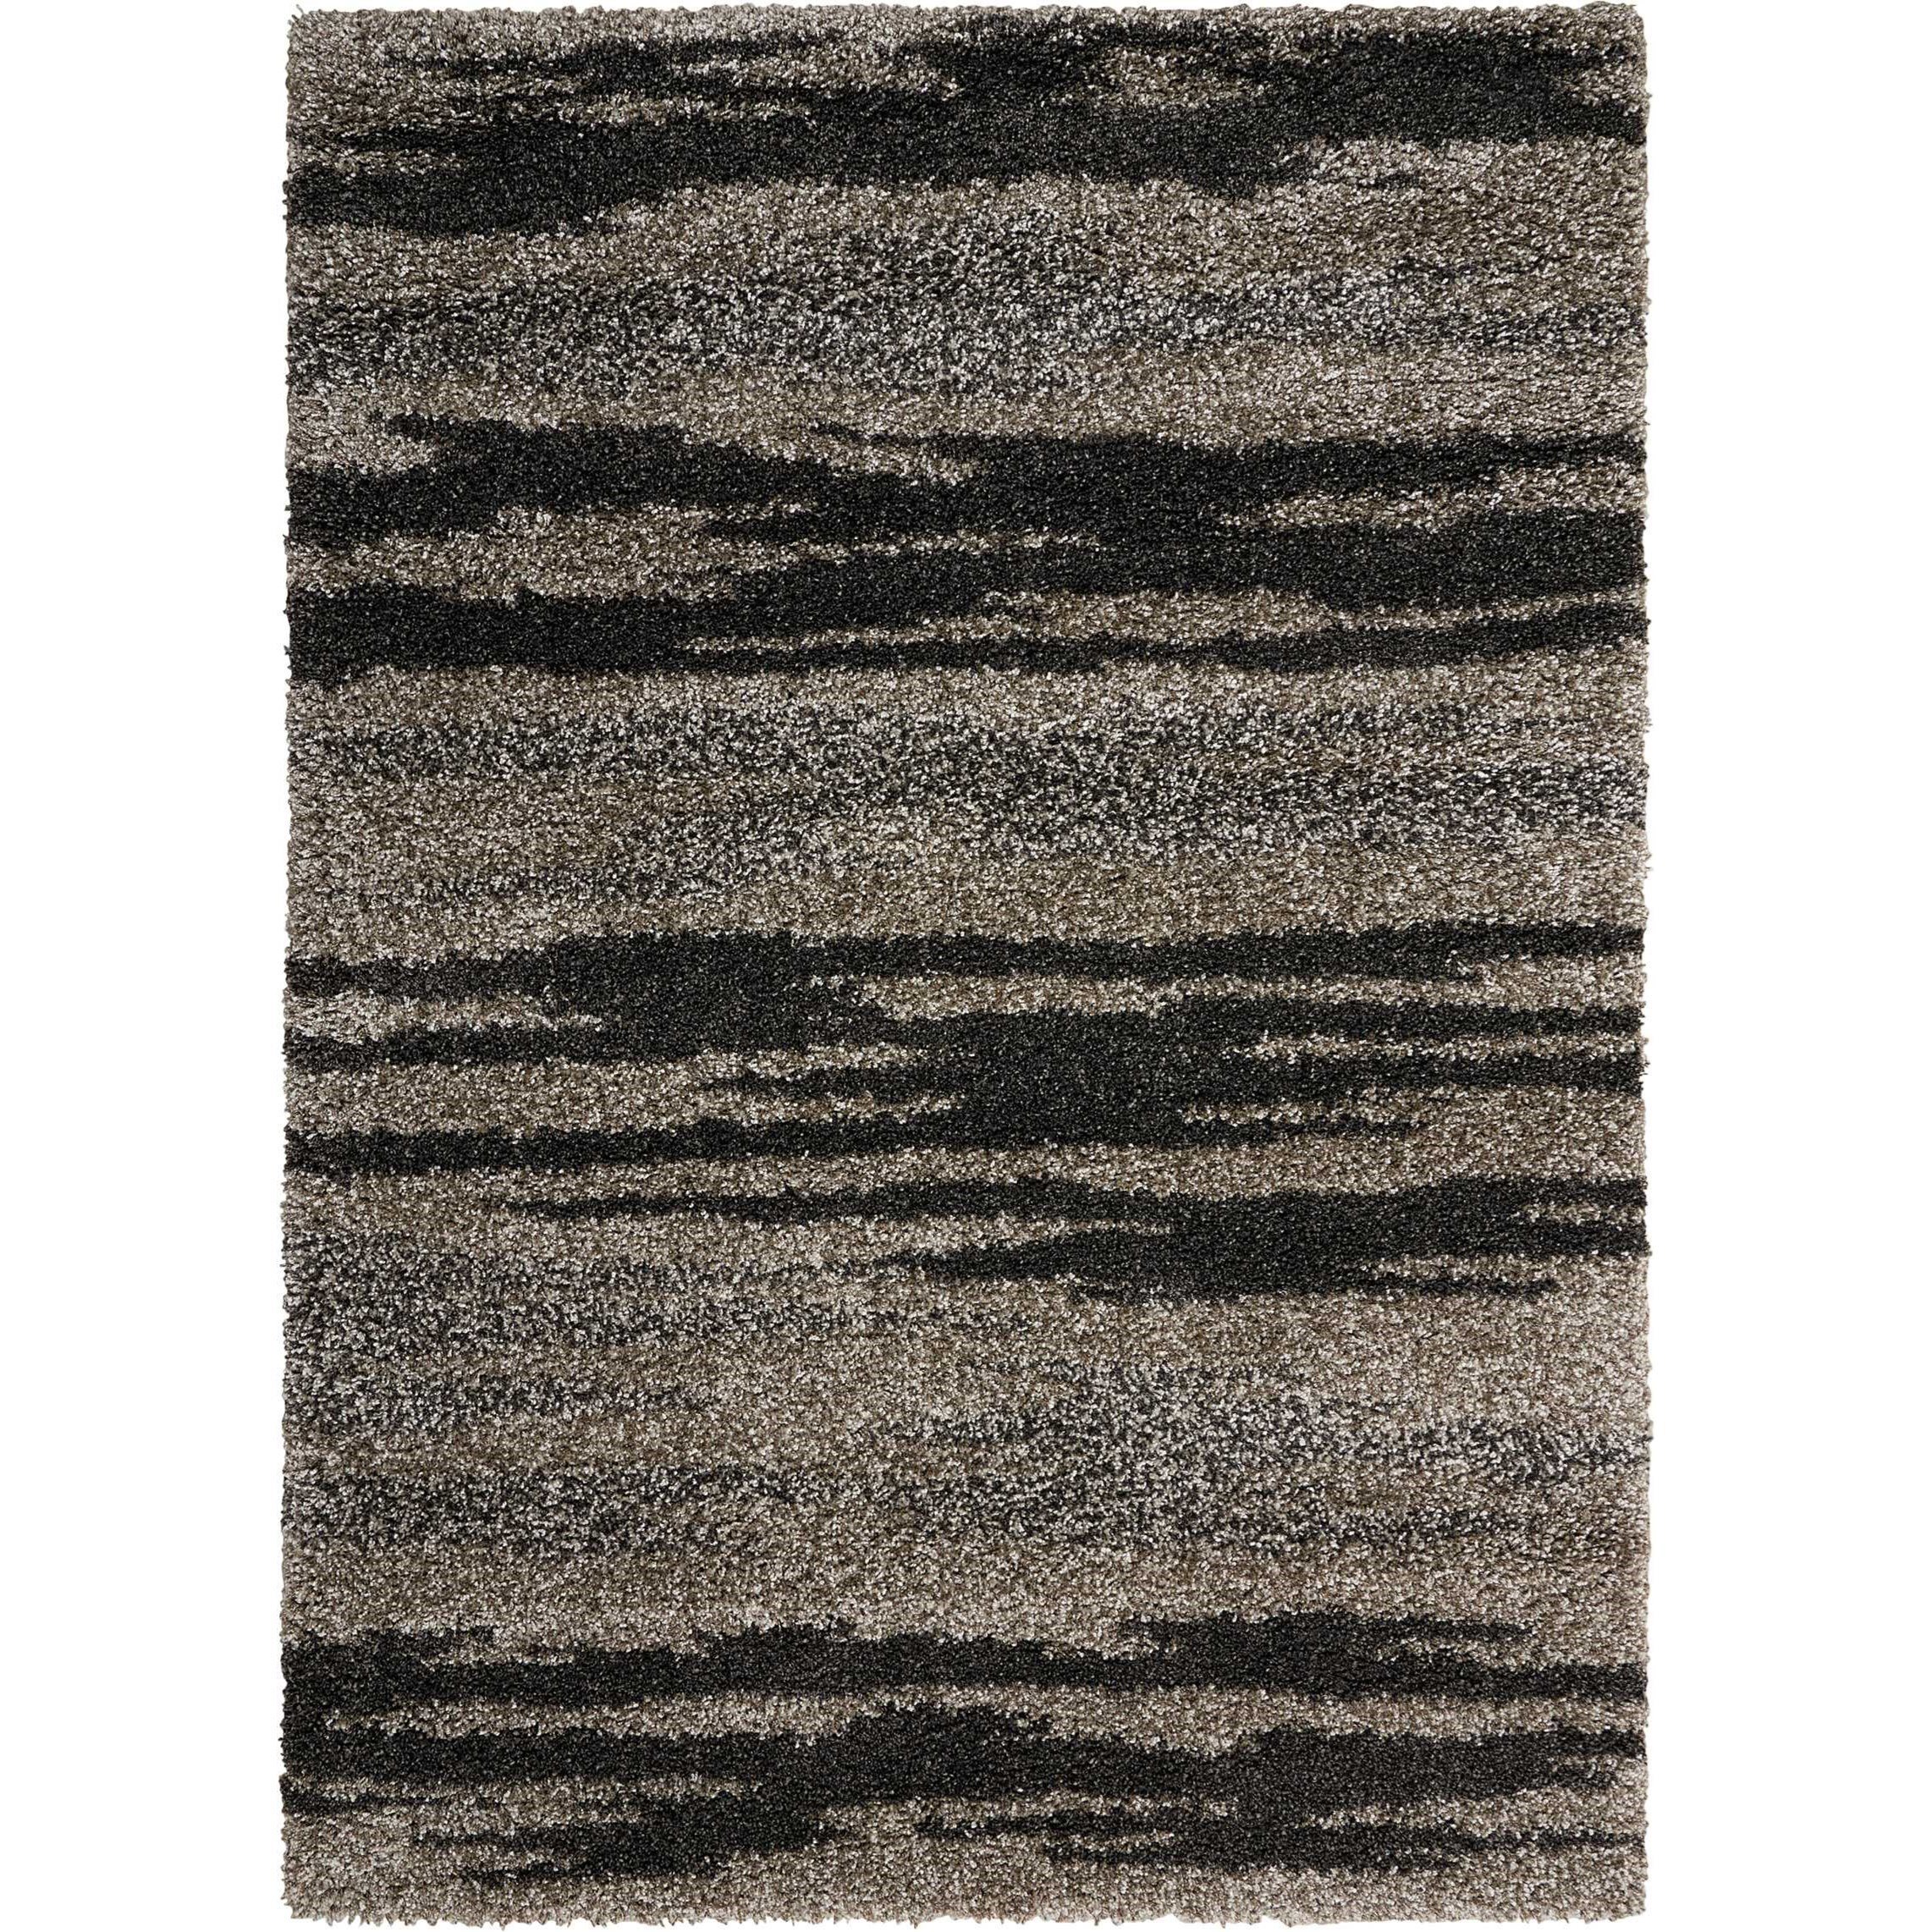 "Amore 5'3"" x 7'5"" Marble Rectangle Rug by Nourison at Home Collections Furniture"